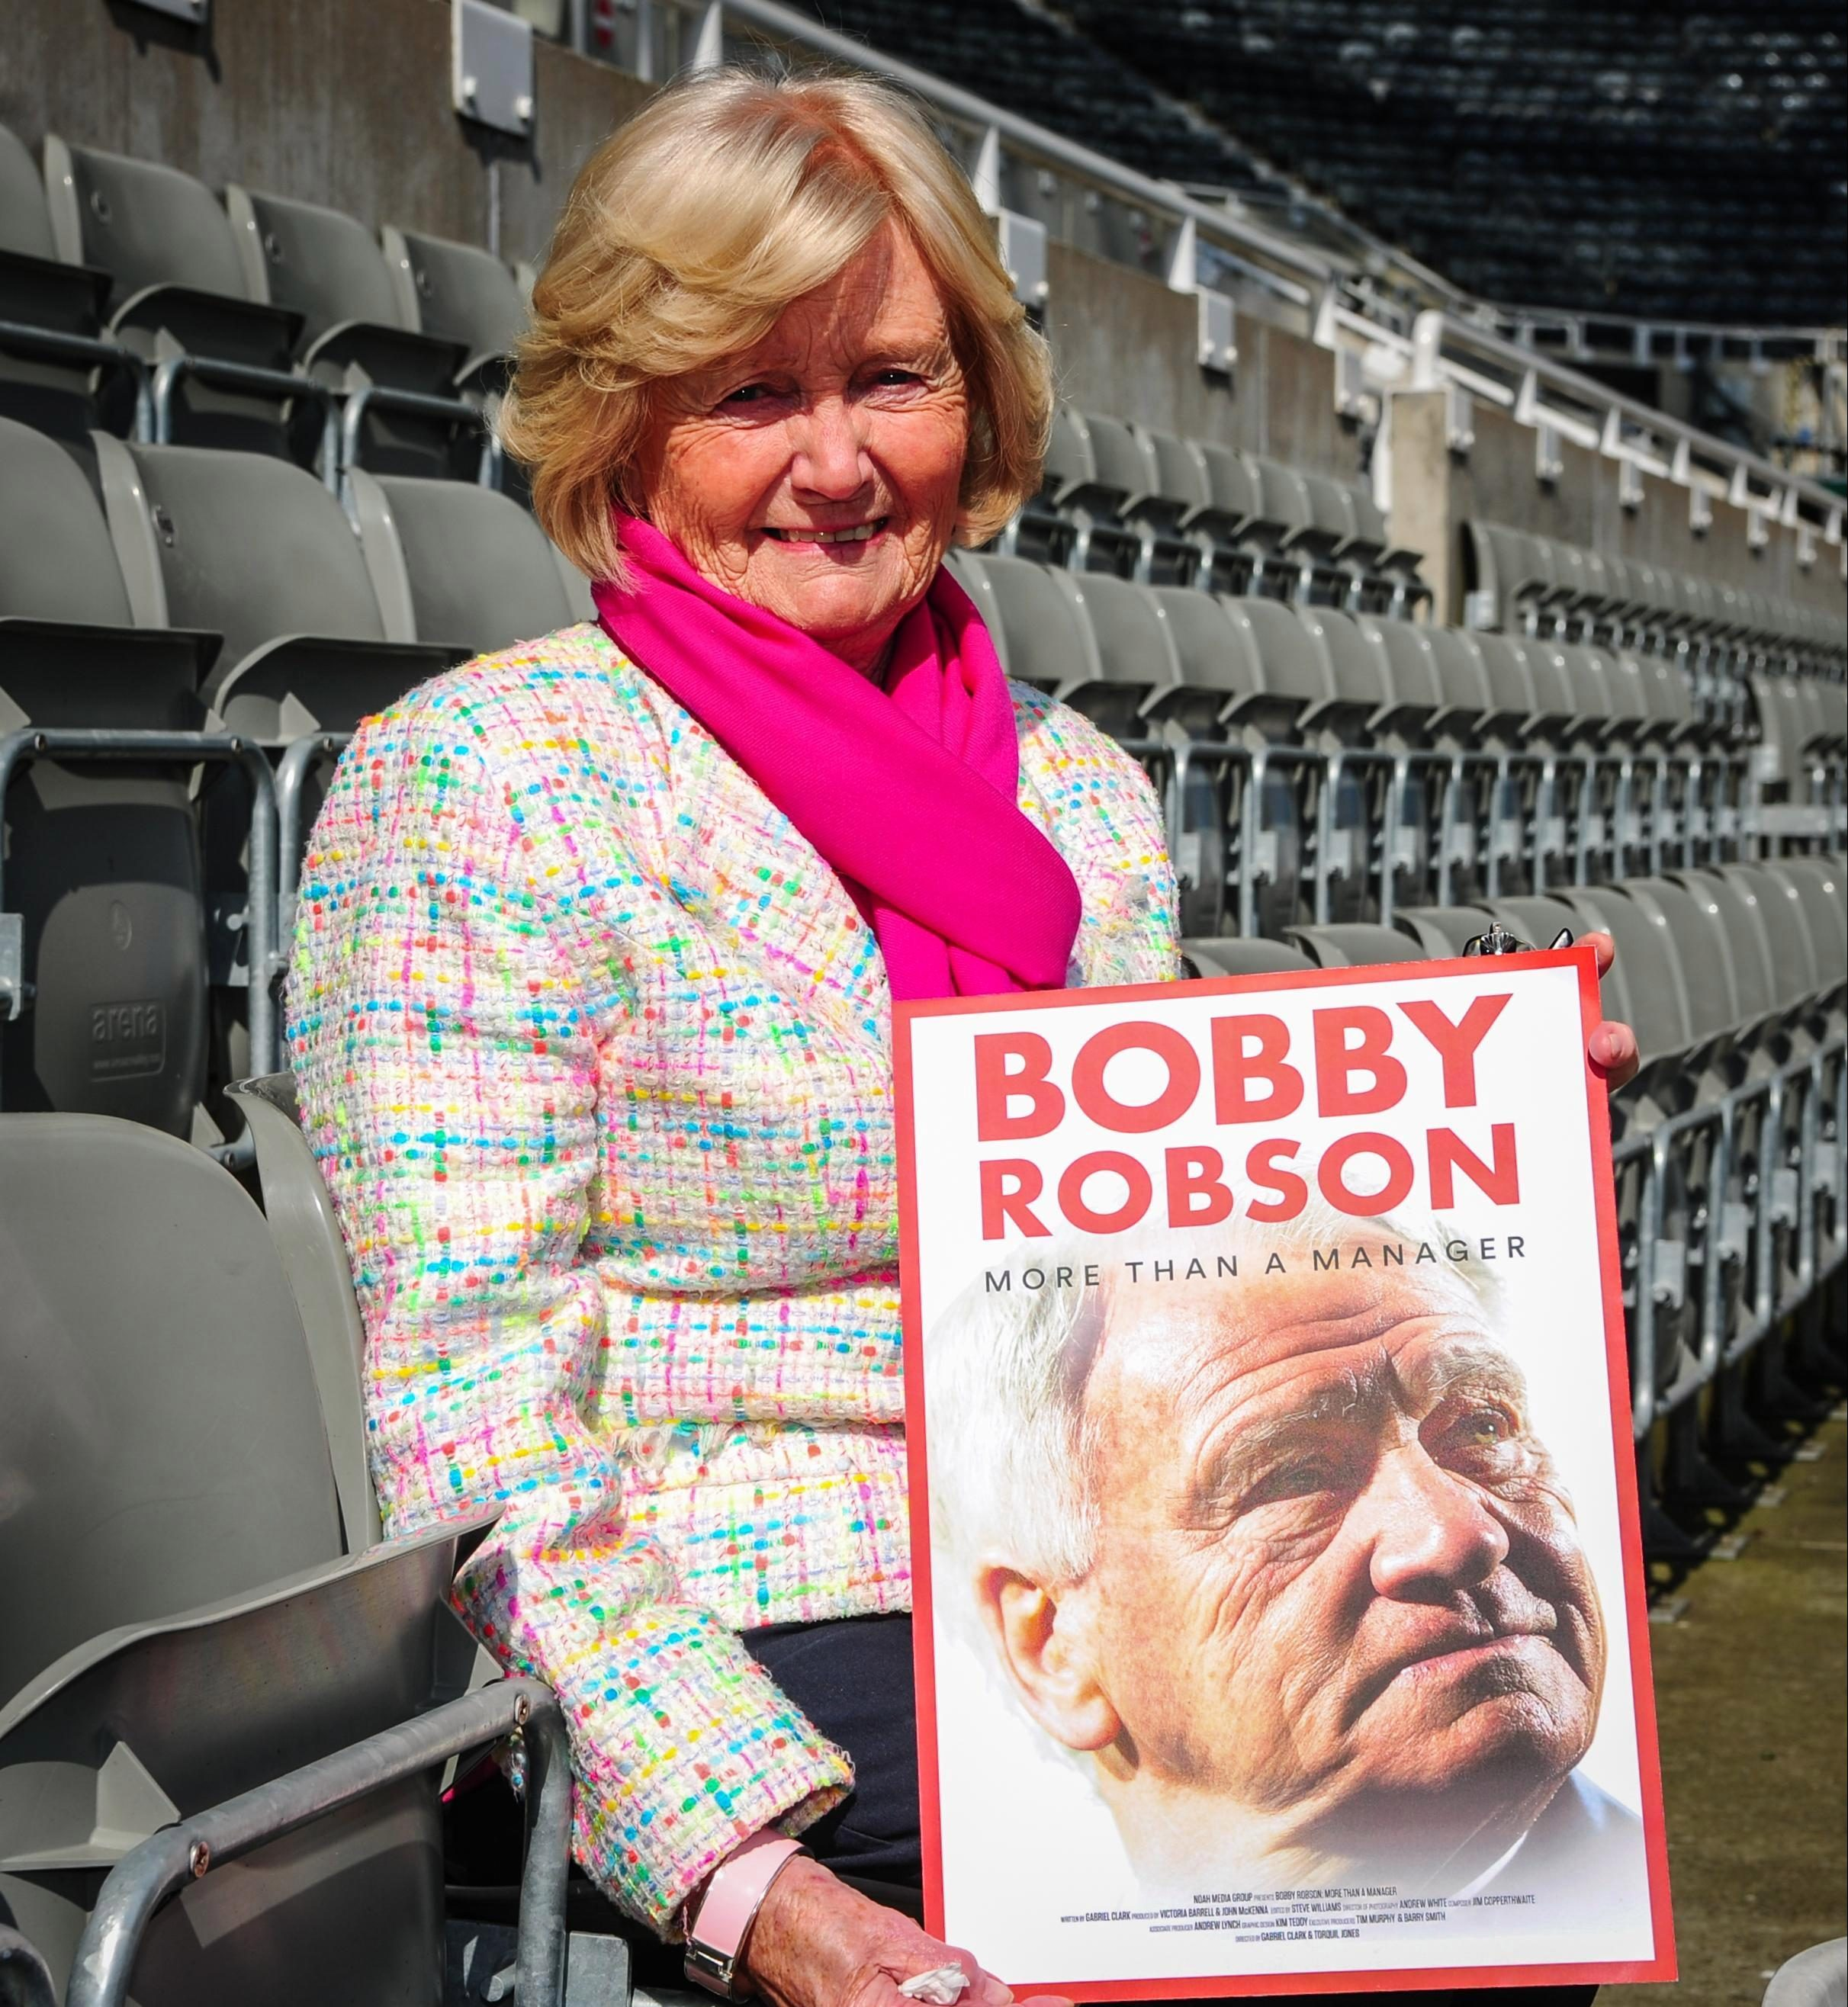 Sir Bobby Robson's wife, Elsie Robson, proudly shows off the film poster